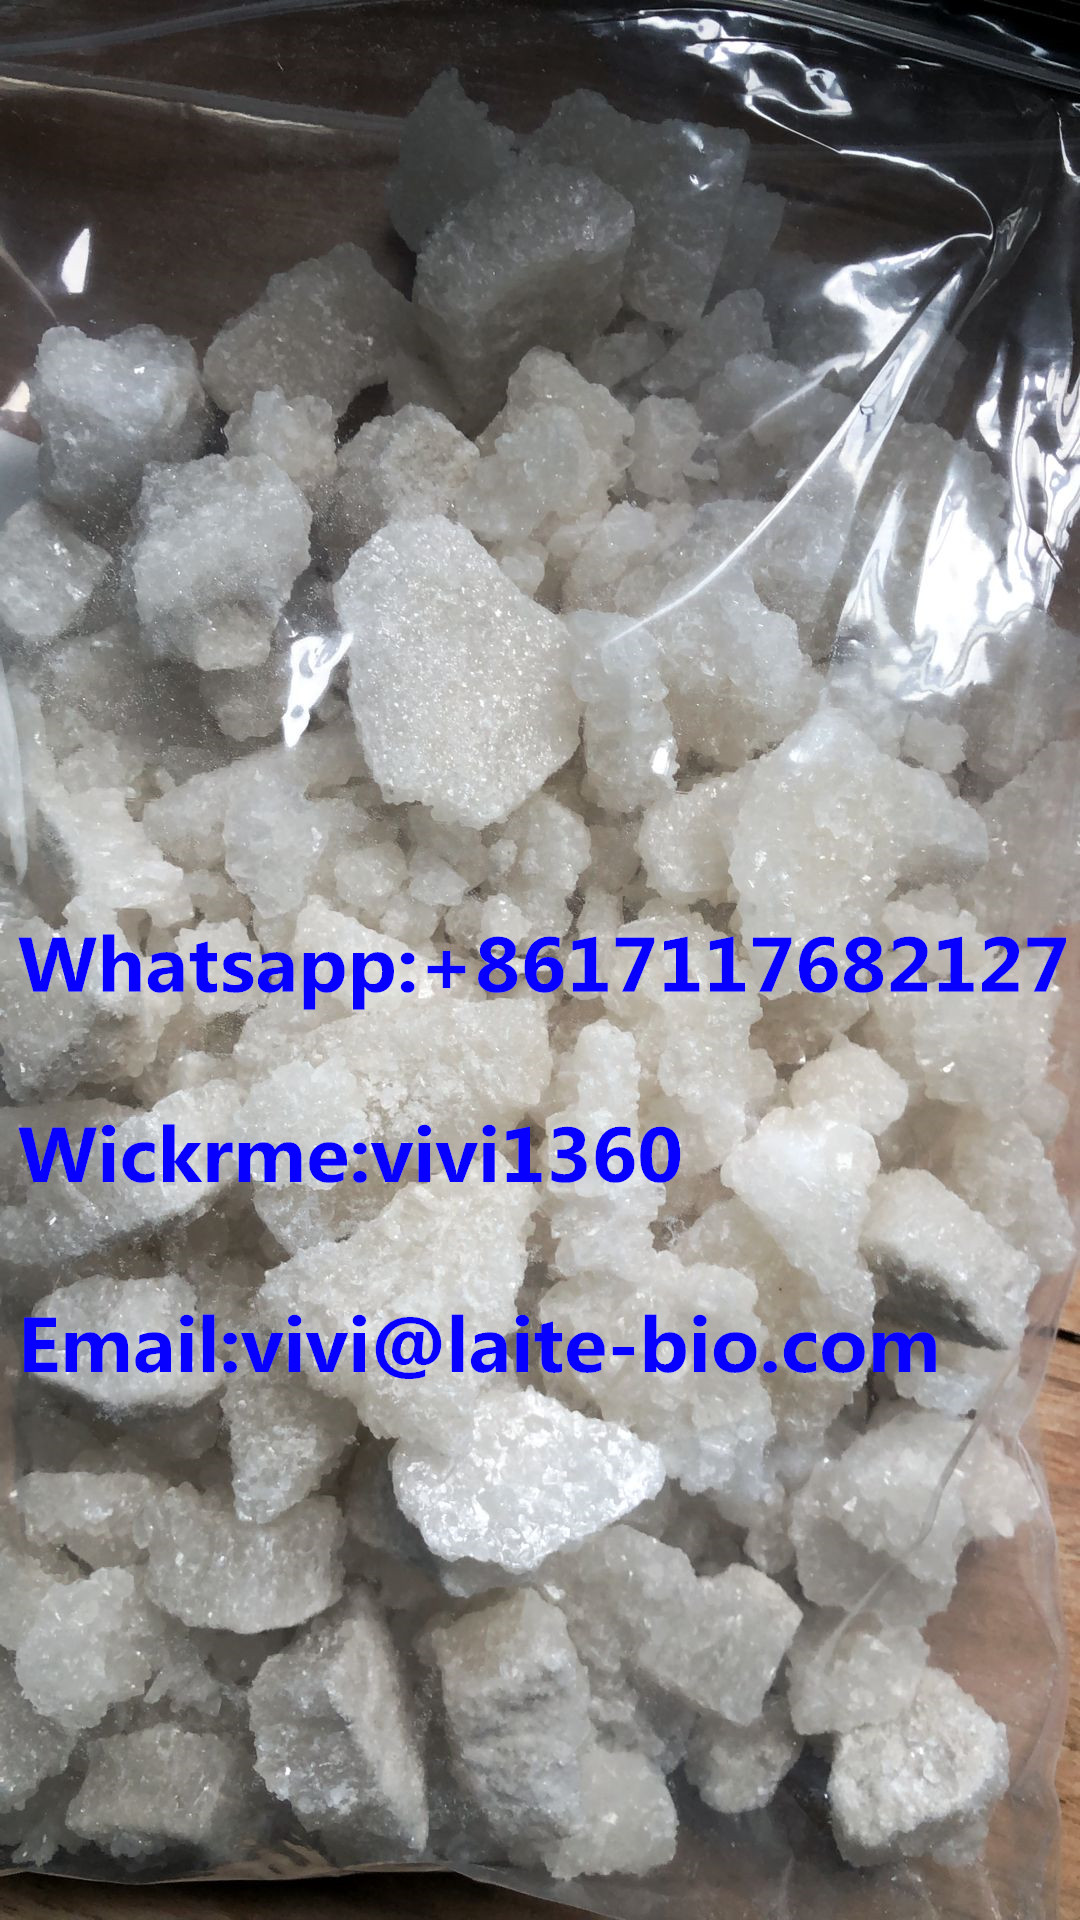 top quality crystal npvp a-pvp for sale online research chemical (wickrme:vivi1360)